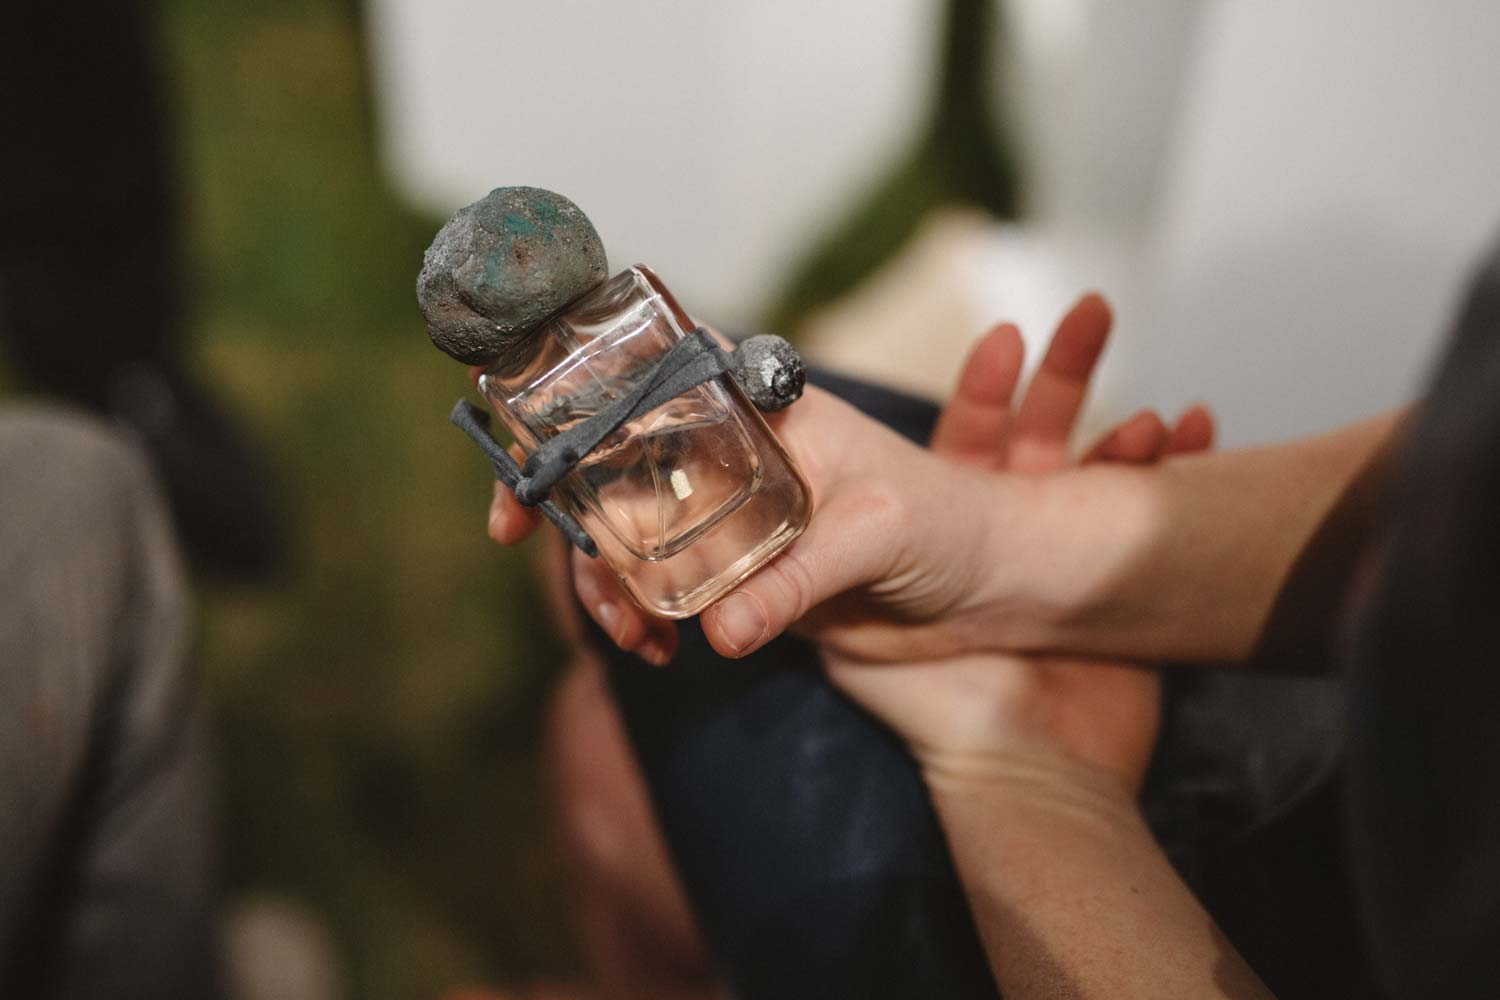 Sirio Extrait de Parfum flacon in glass bottle and hand sculpted cap and charm in Stefania Squeglia hands